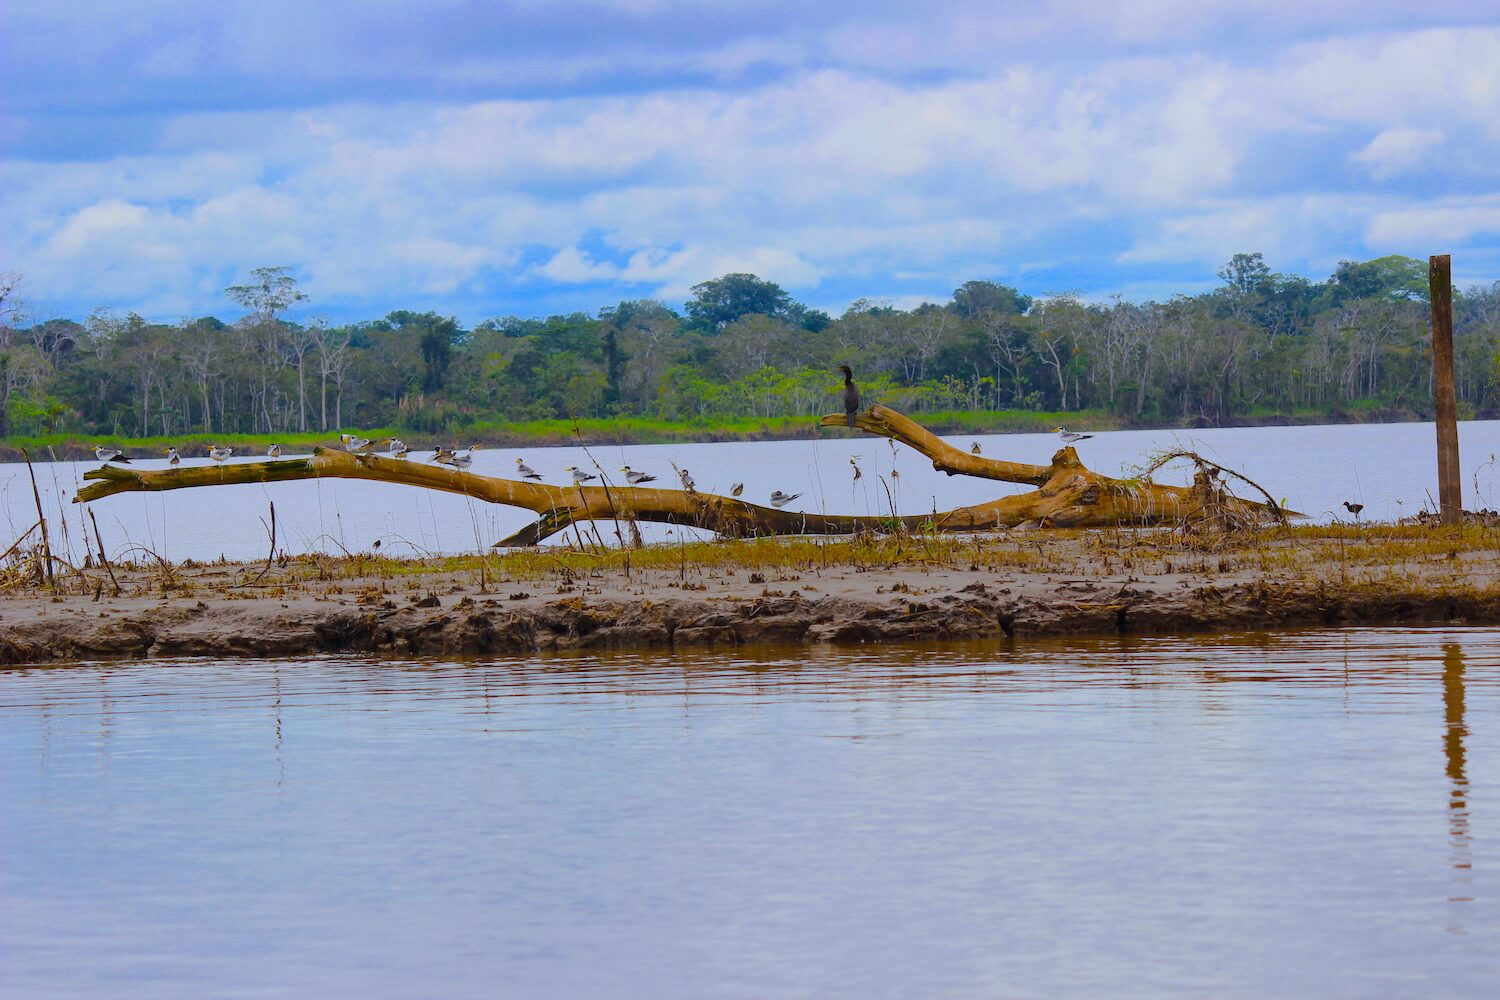 birds on log in amazon river